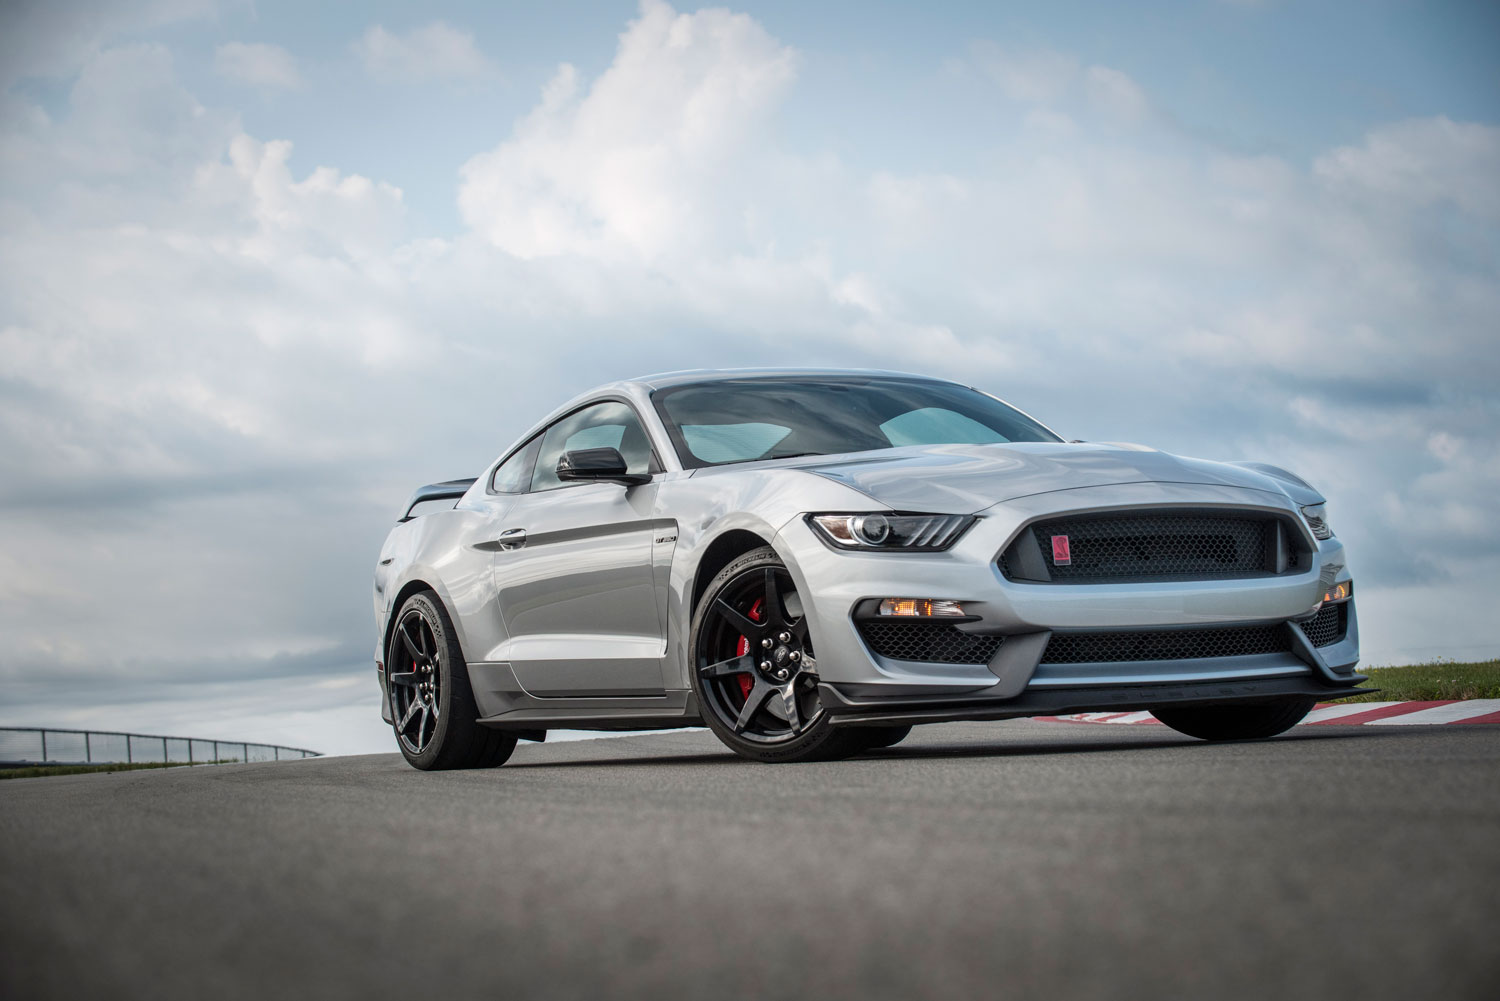 2020 Mustang Shelby GT350R to add GT500's chassis upgrades thumbnail